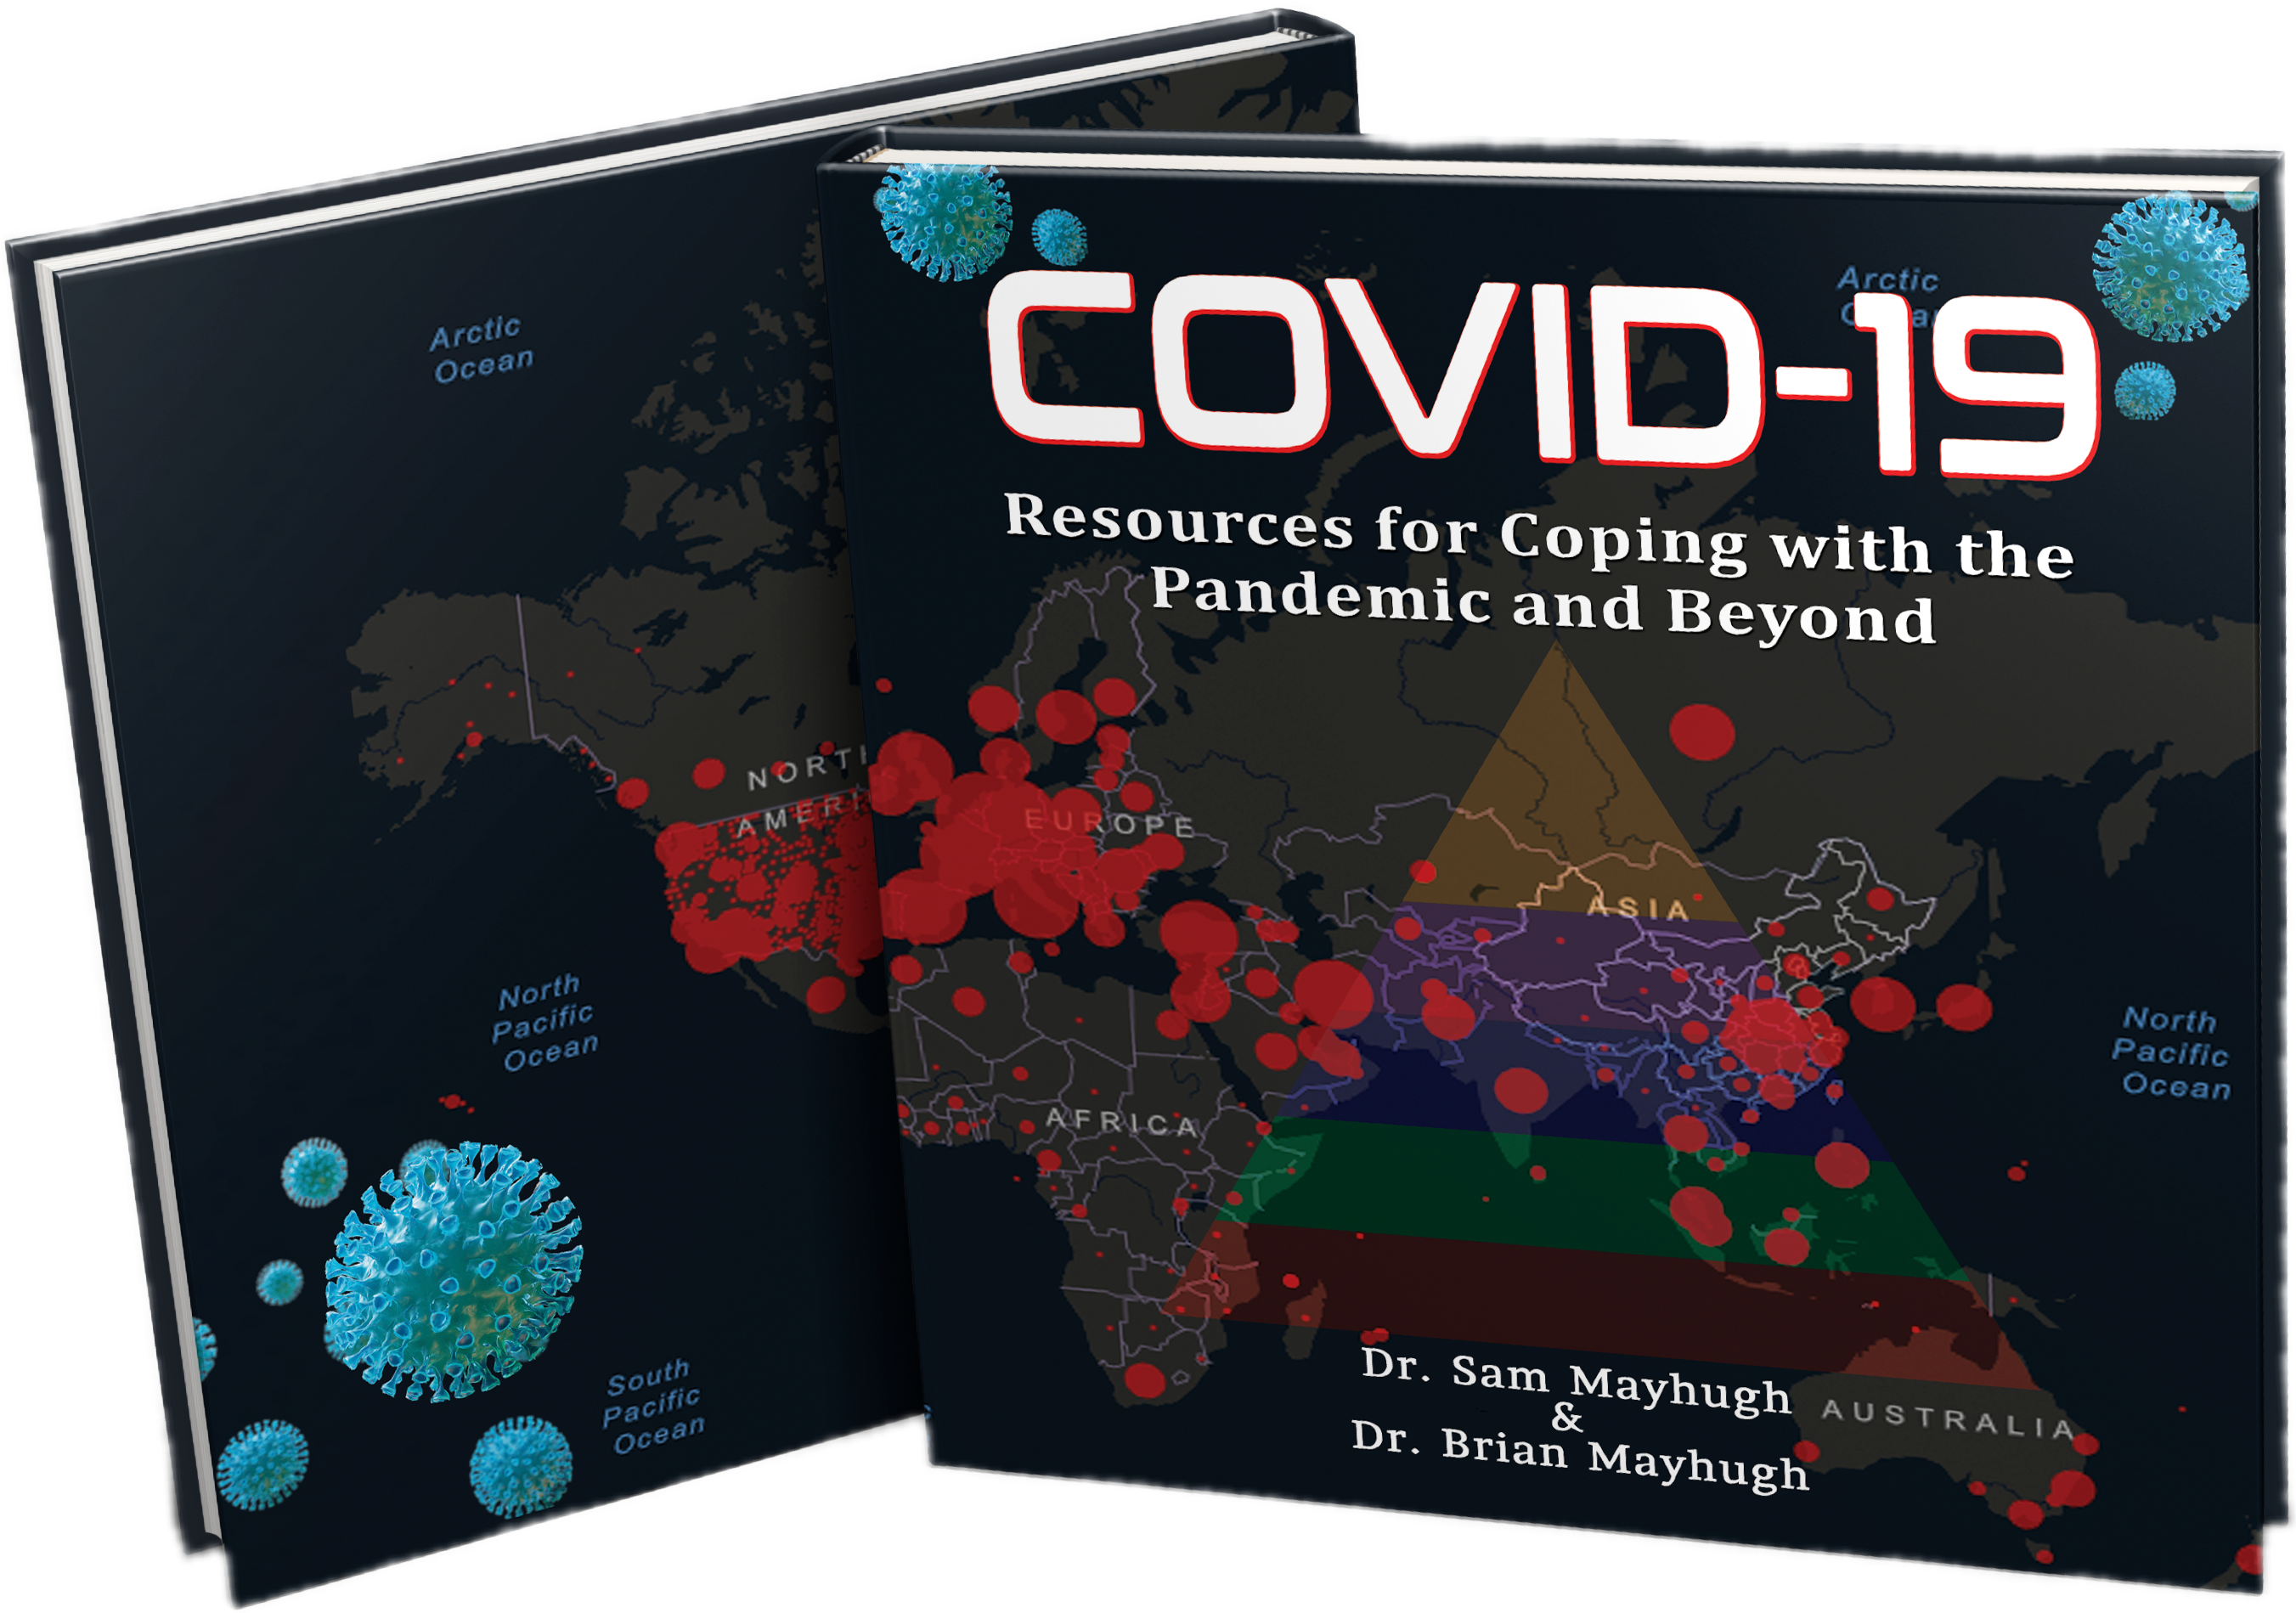 Dr. Sam Mayhugh Announces the Launch of a New Book for People Living Under the Stress of the COVID-19